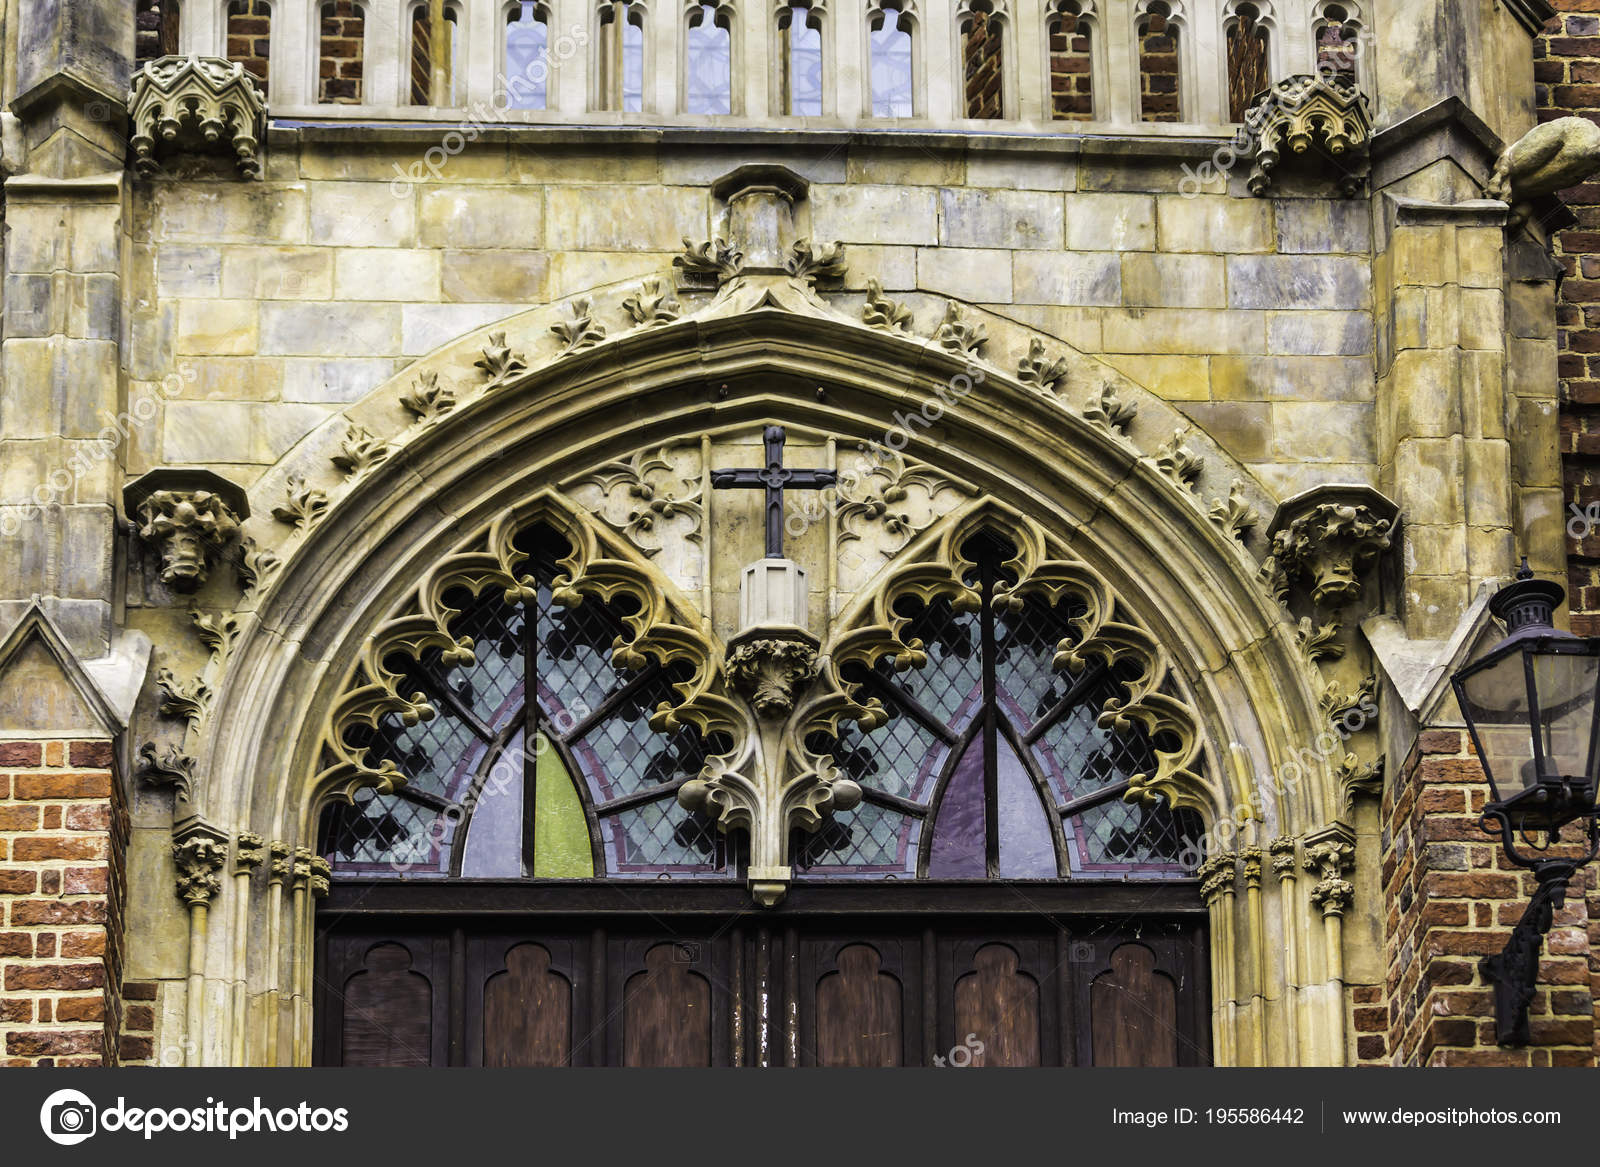 Entrance Church Gothic Style Stone Decoration Balustrade Stained